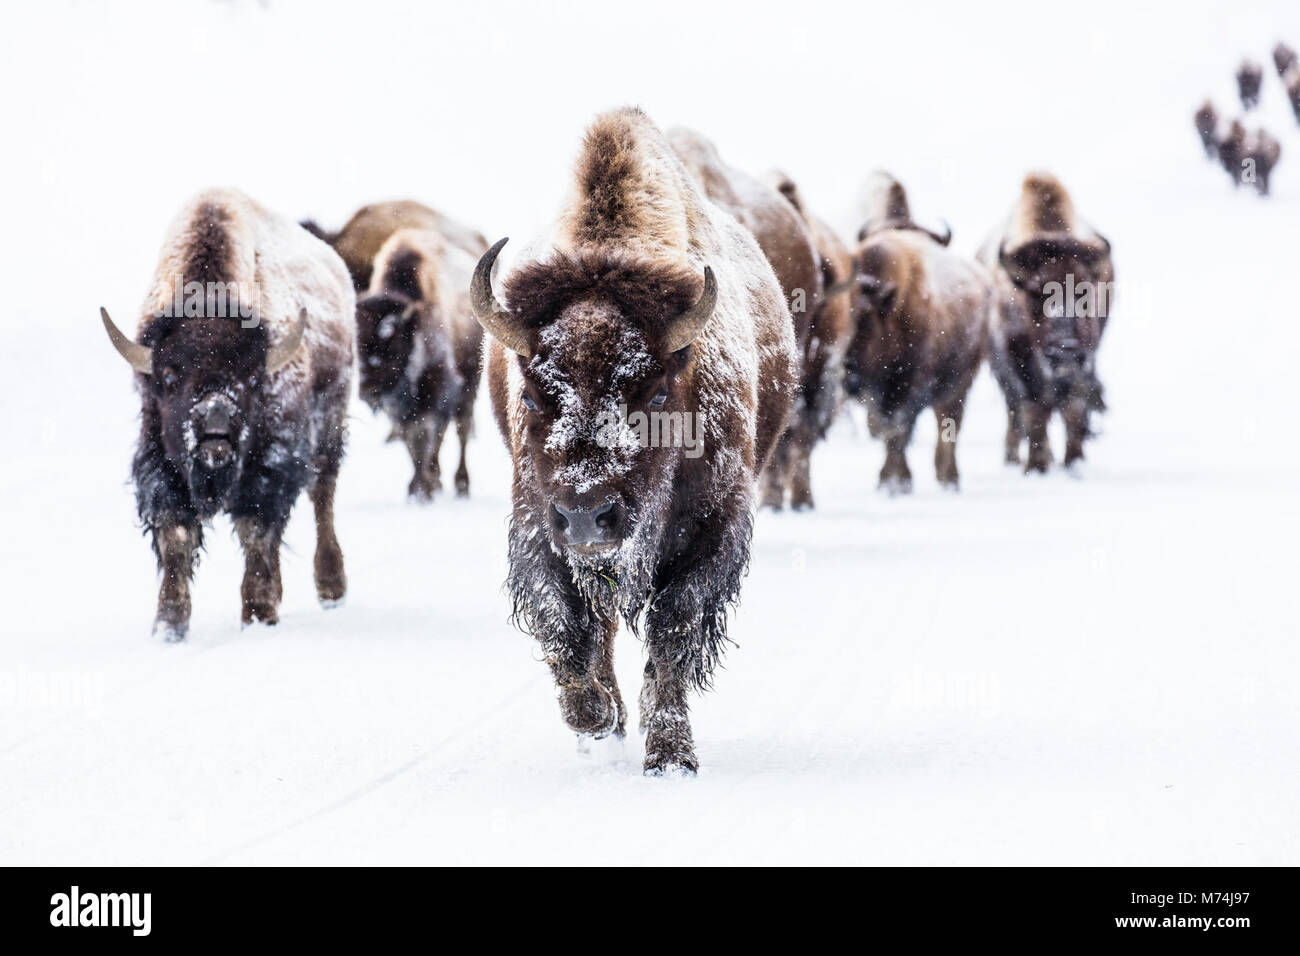 Bison group in the road near Frying Pan Spring. - Stock Image